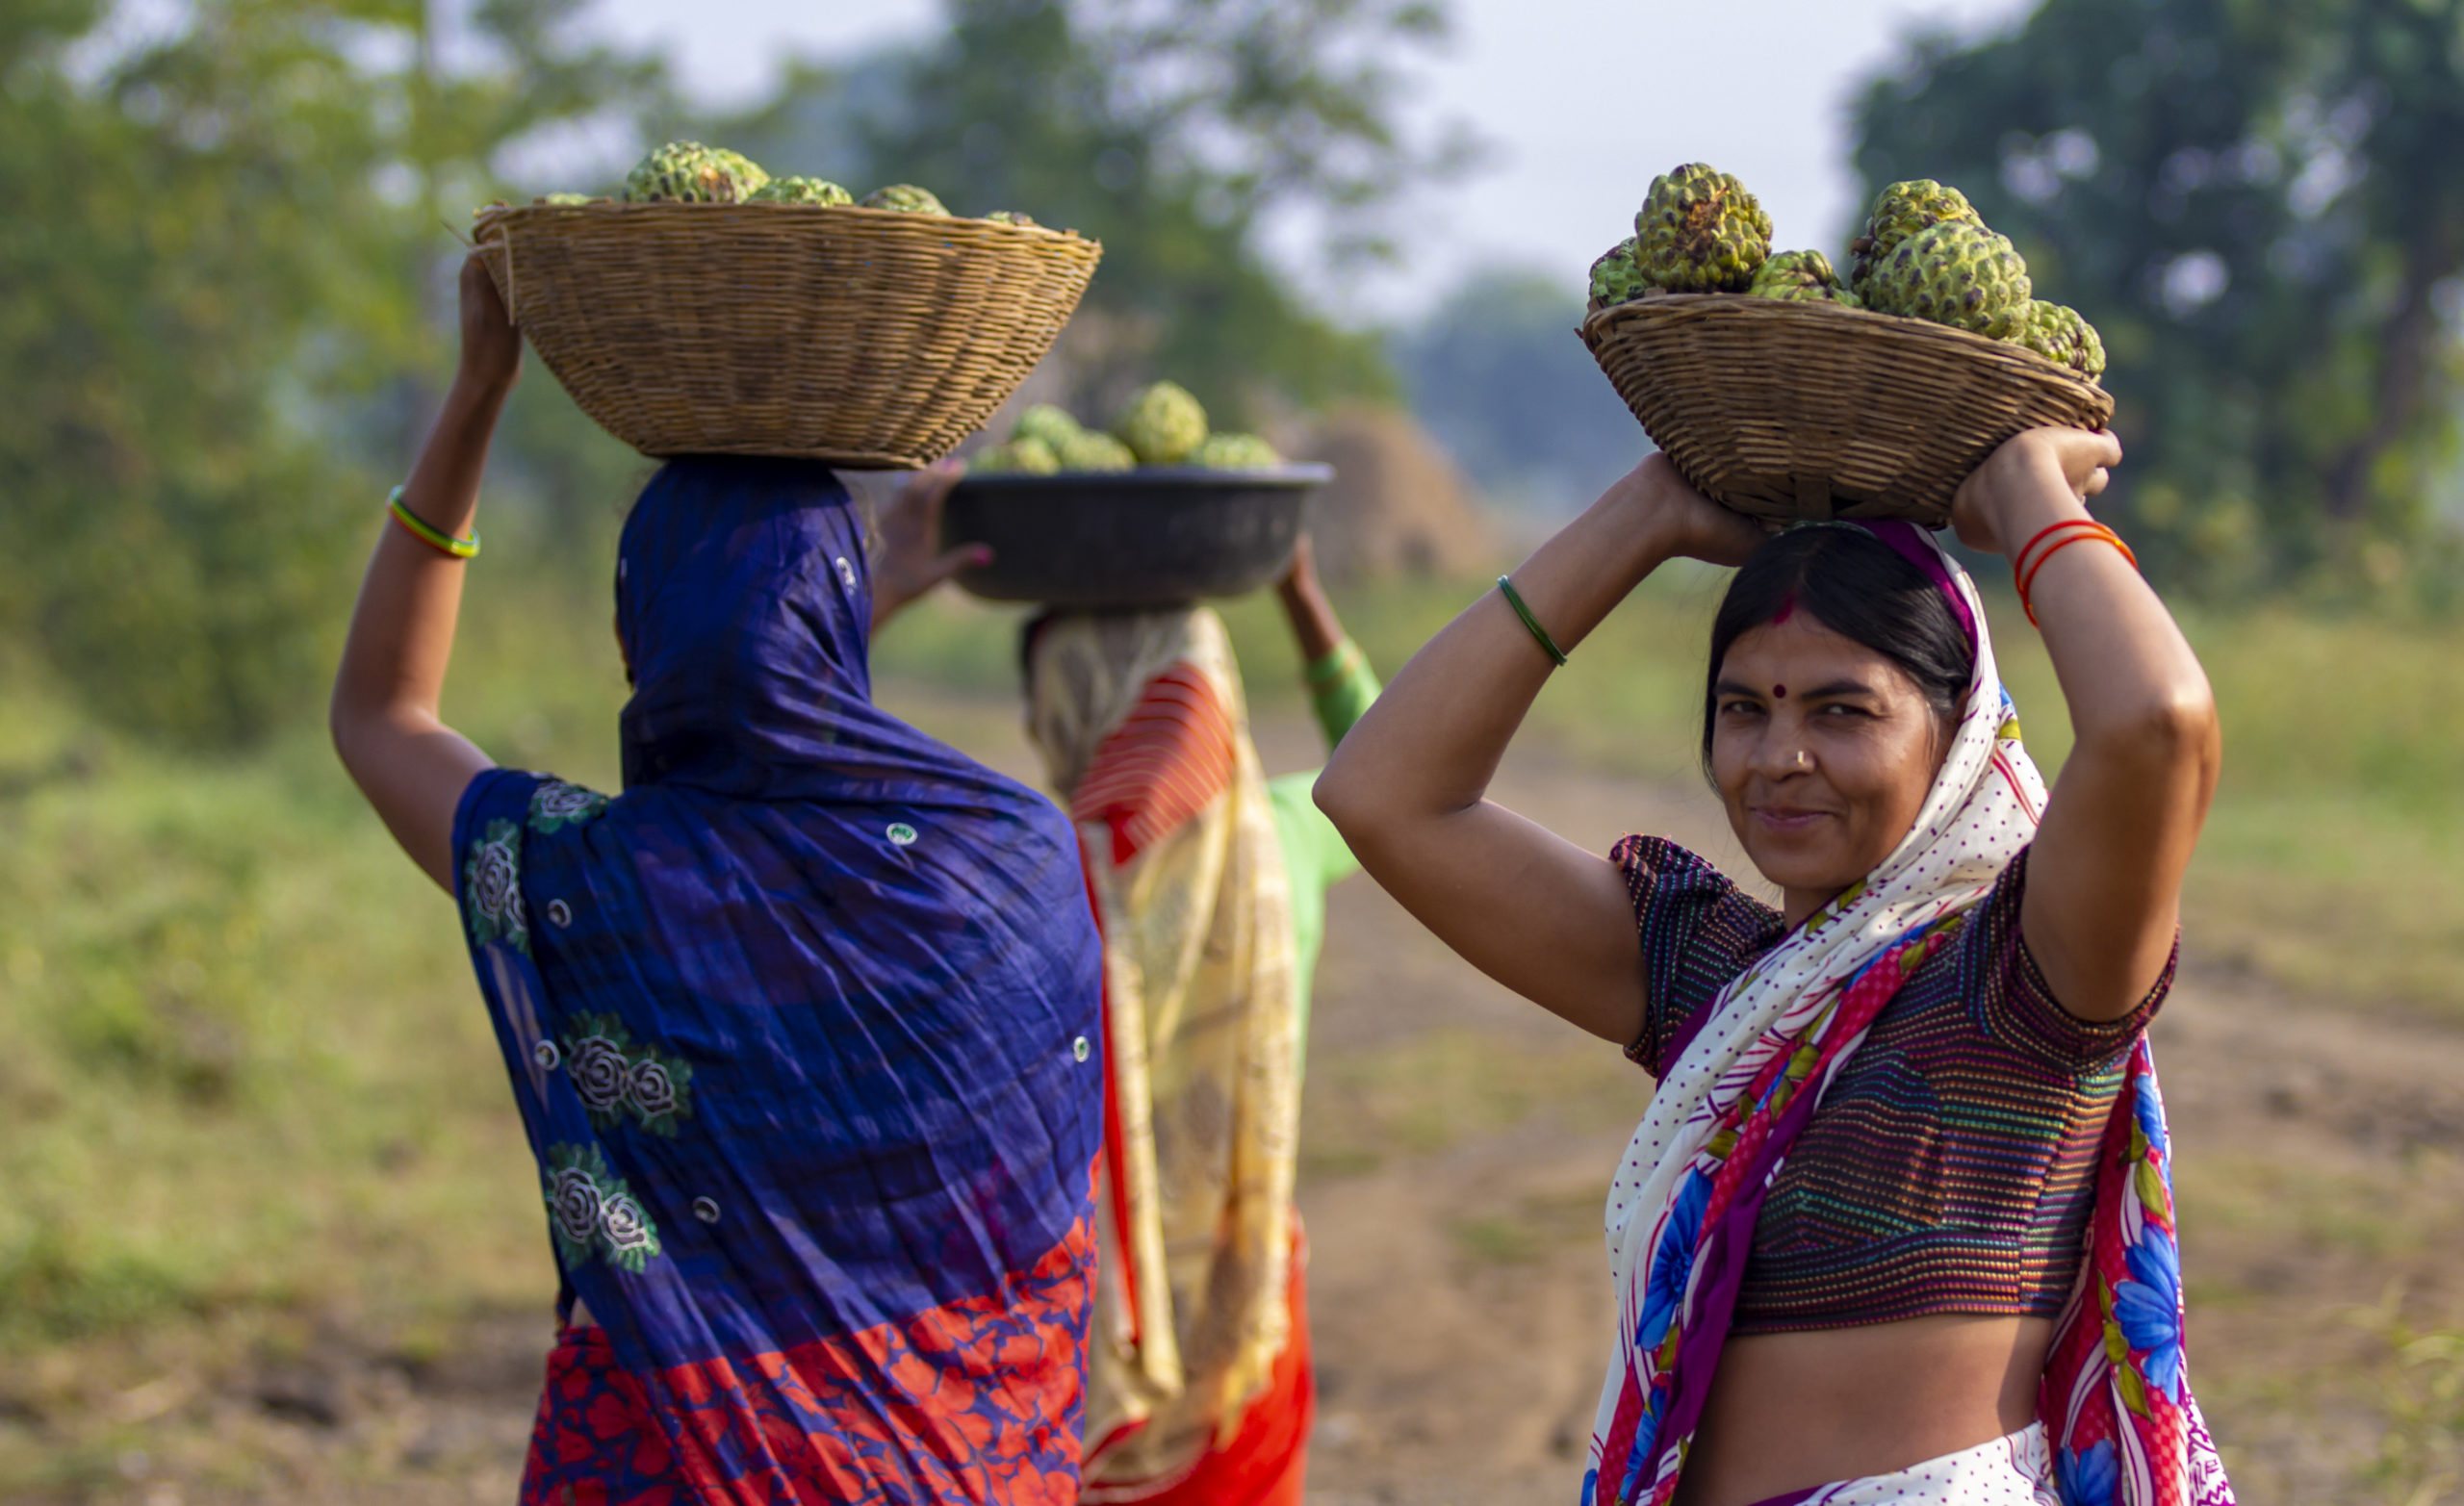 New partner provides income to tribal women